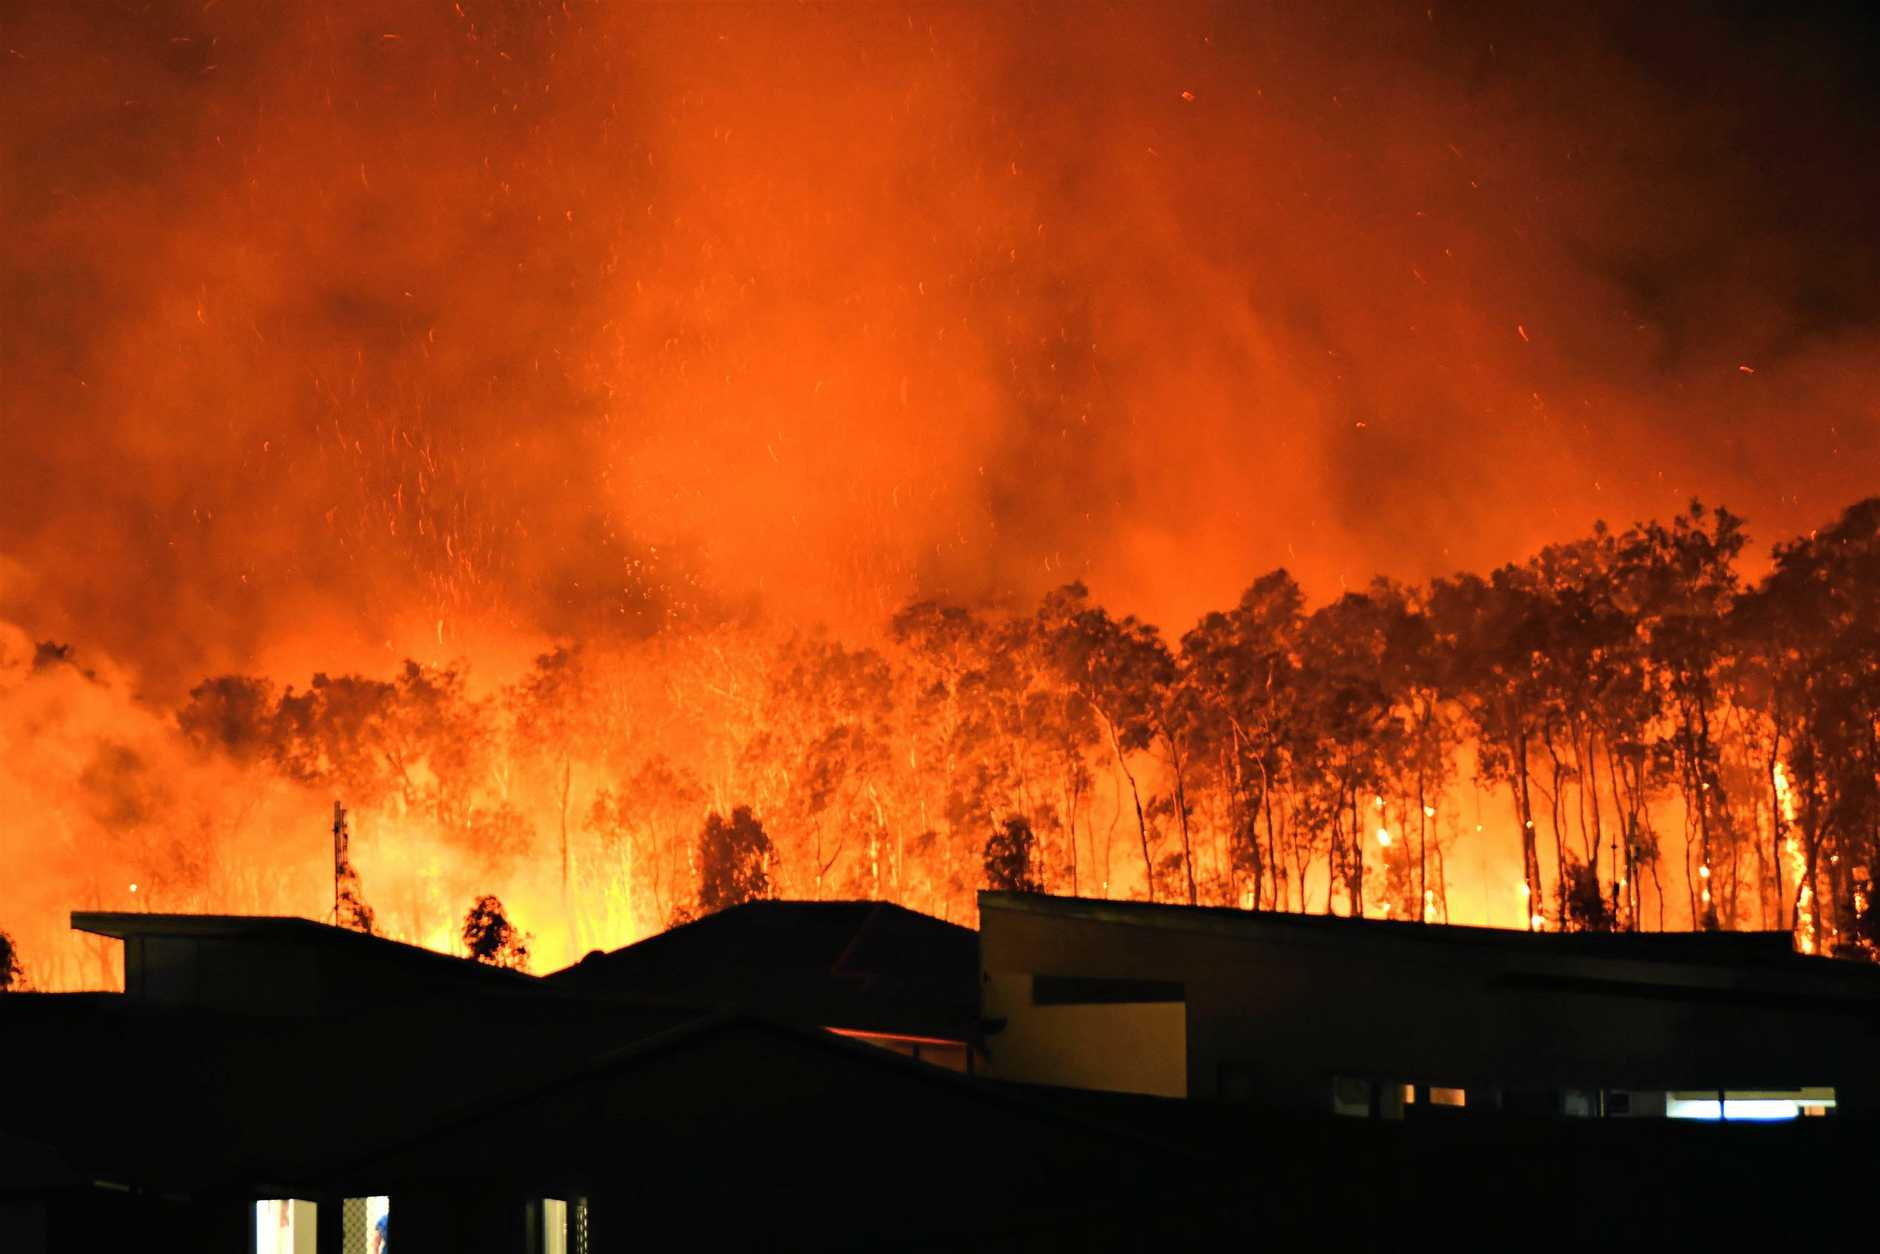 DANGER: The NSW Rural Fire Service said while the preferred and safest option is always to leave, and leave early, there are times when residents get trapped and must seek shelter.